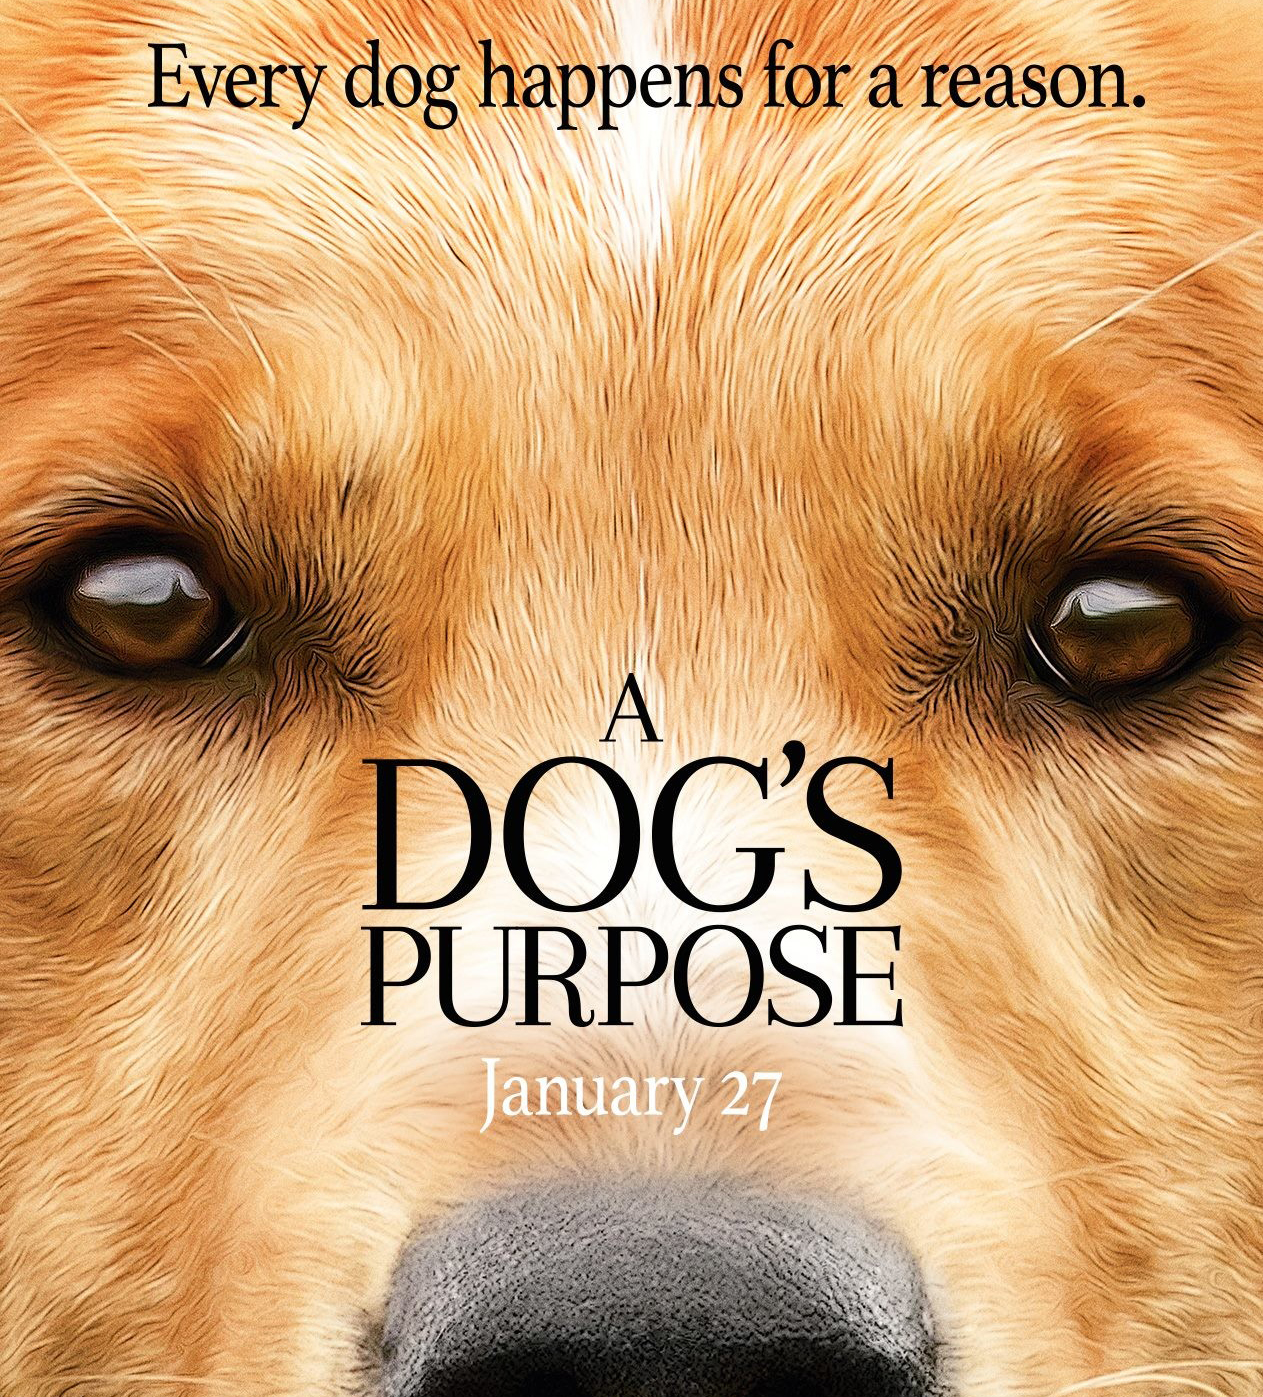 a dogs purpose cartel pelicula